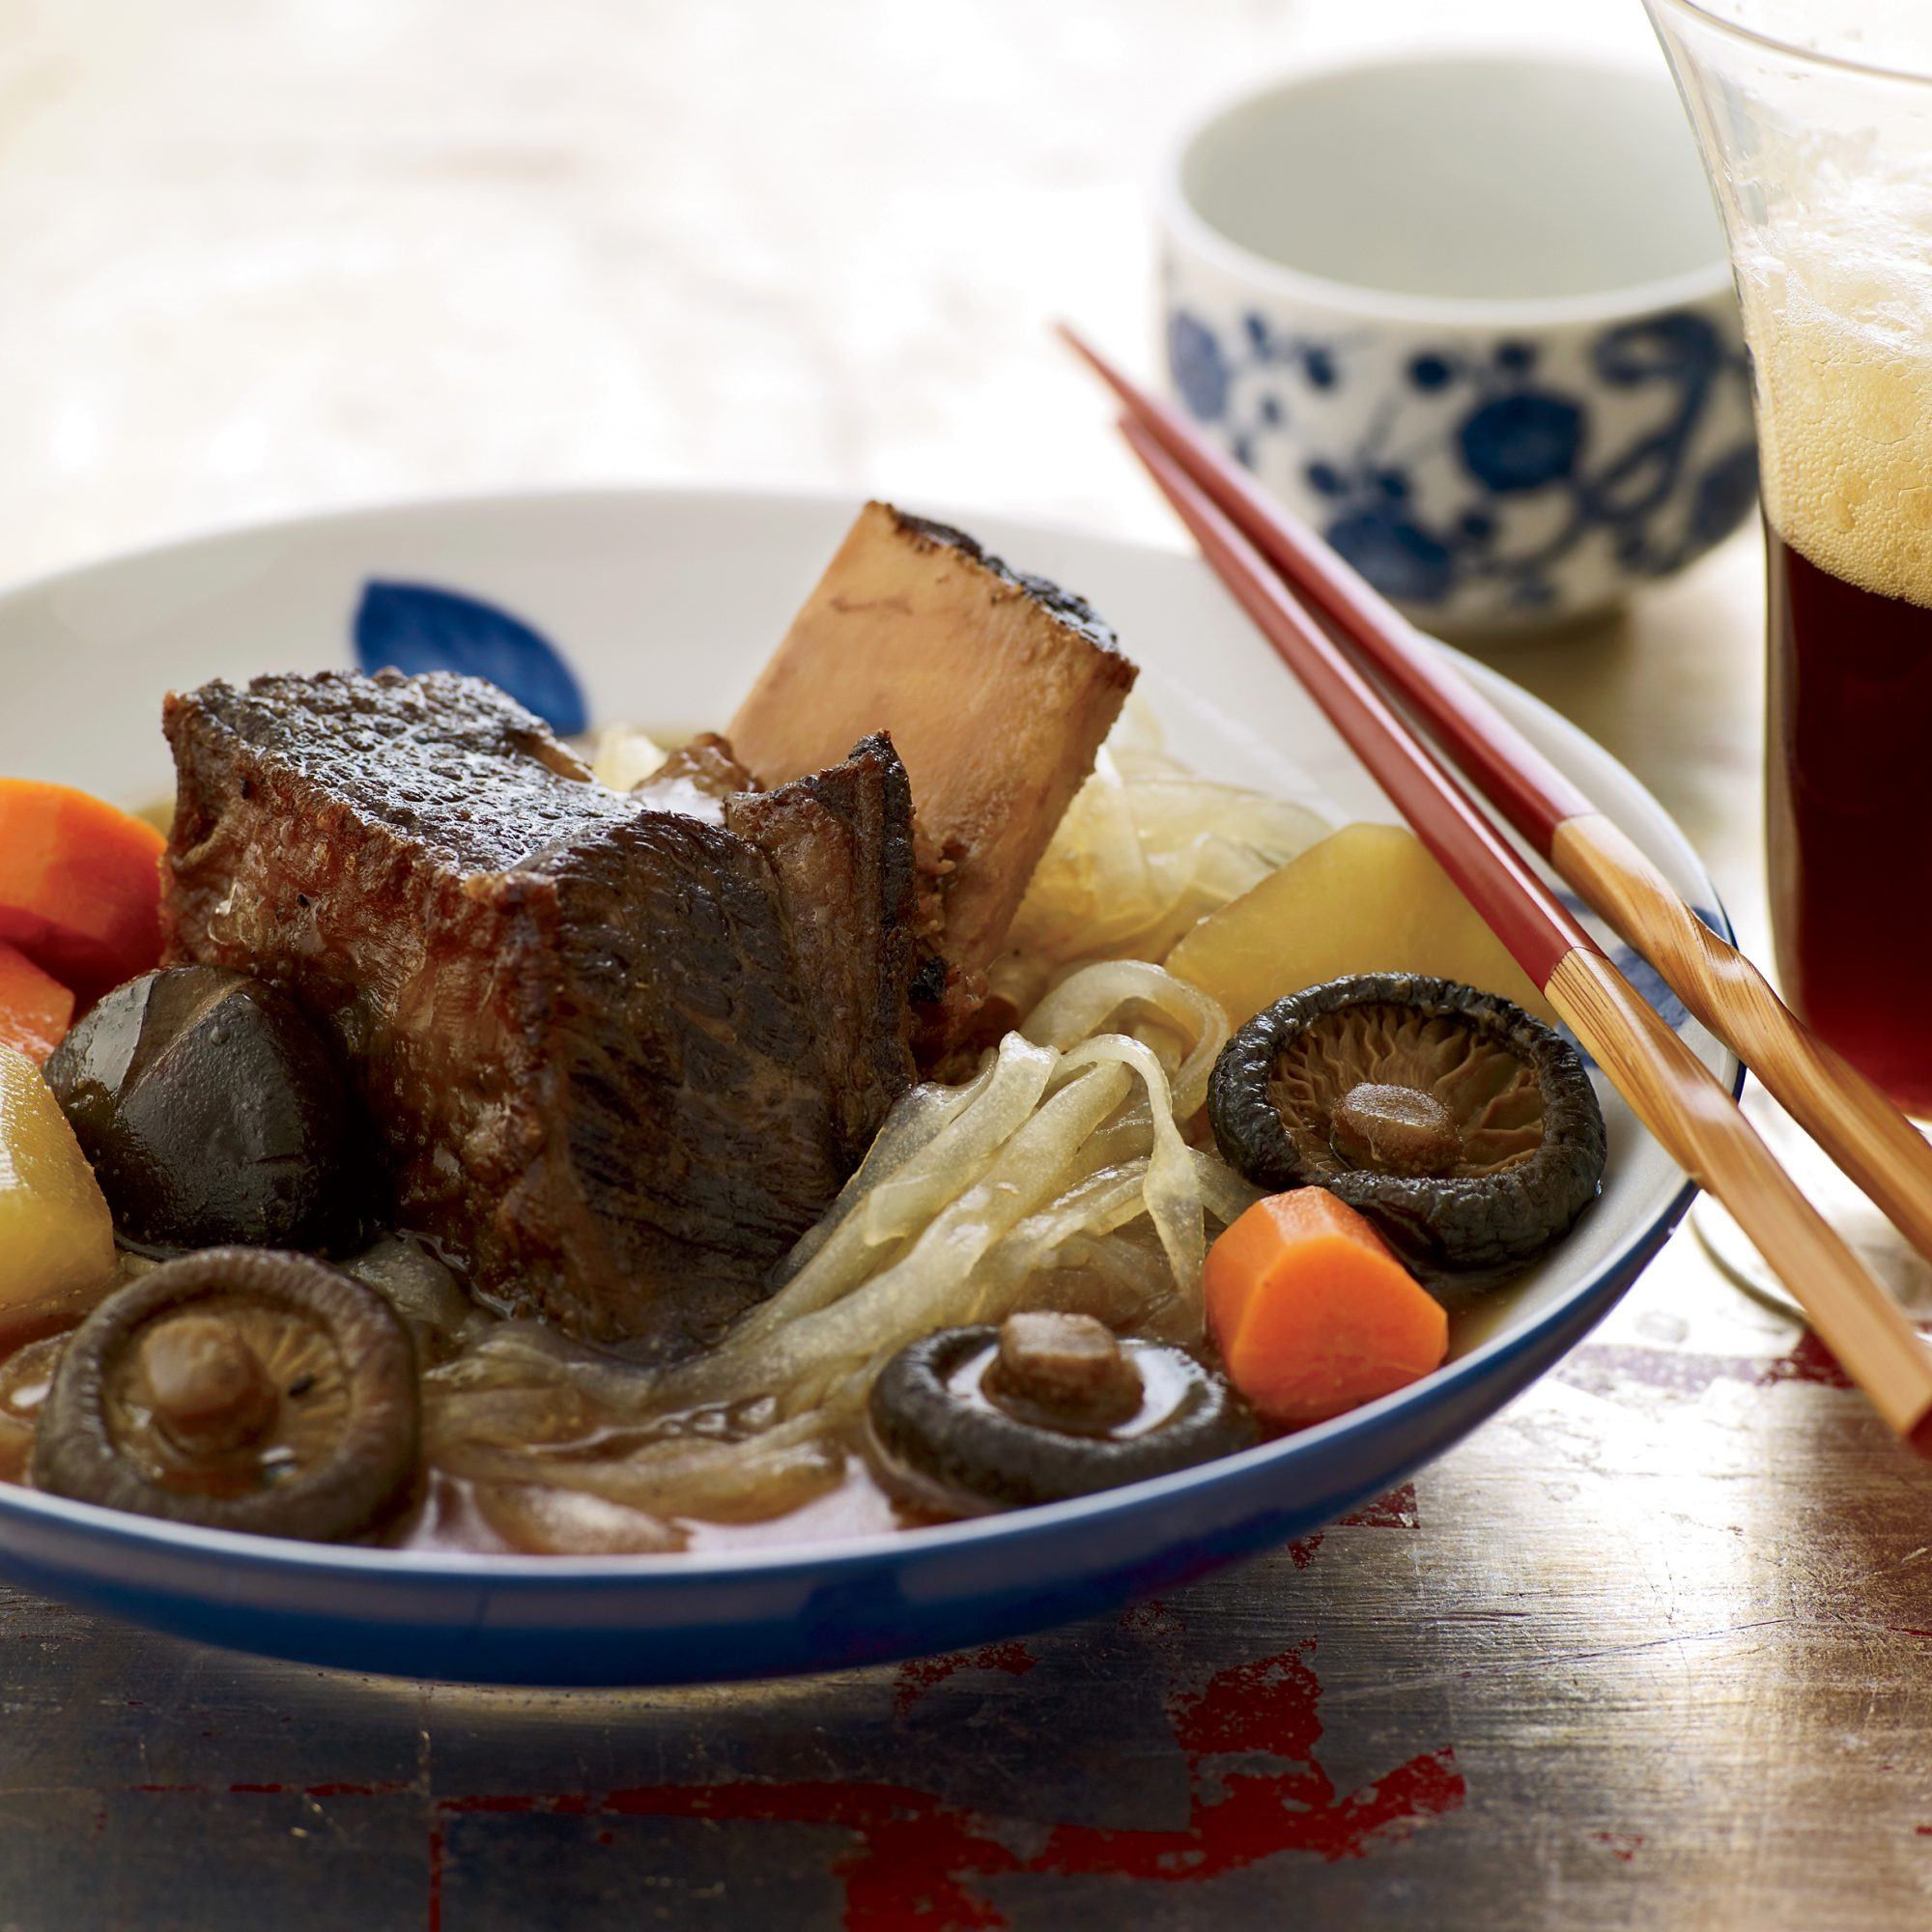 Braised Short Ribs with Daikon and Glass Noodles